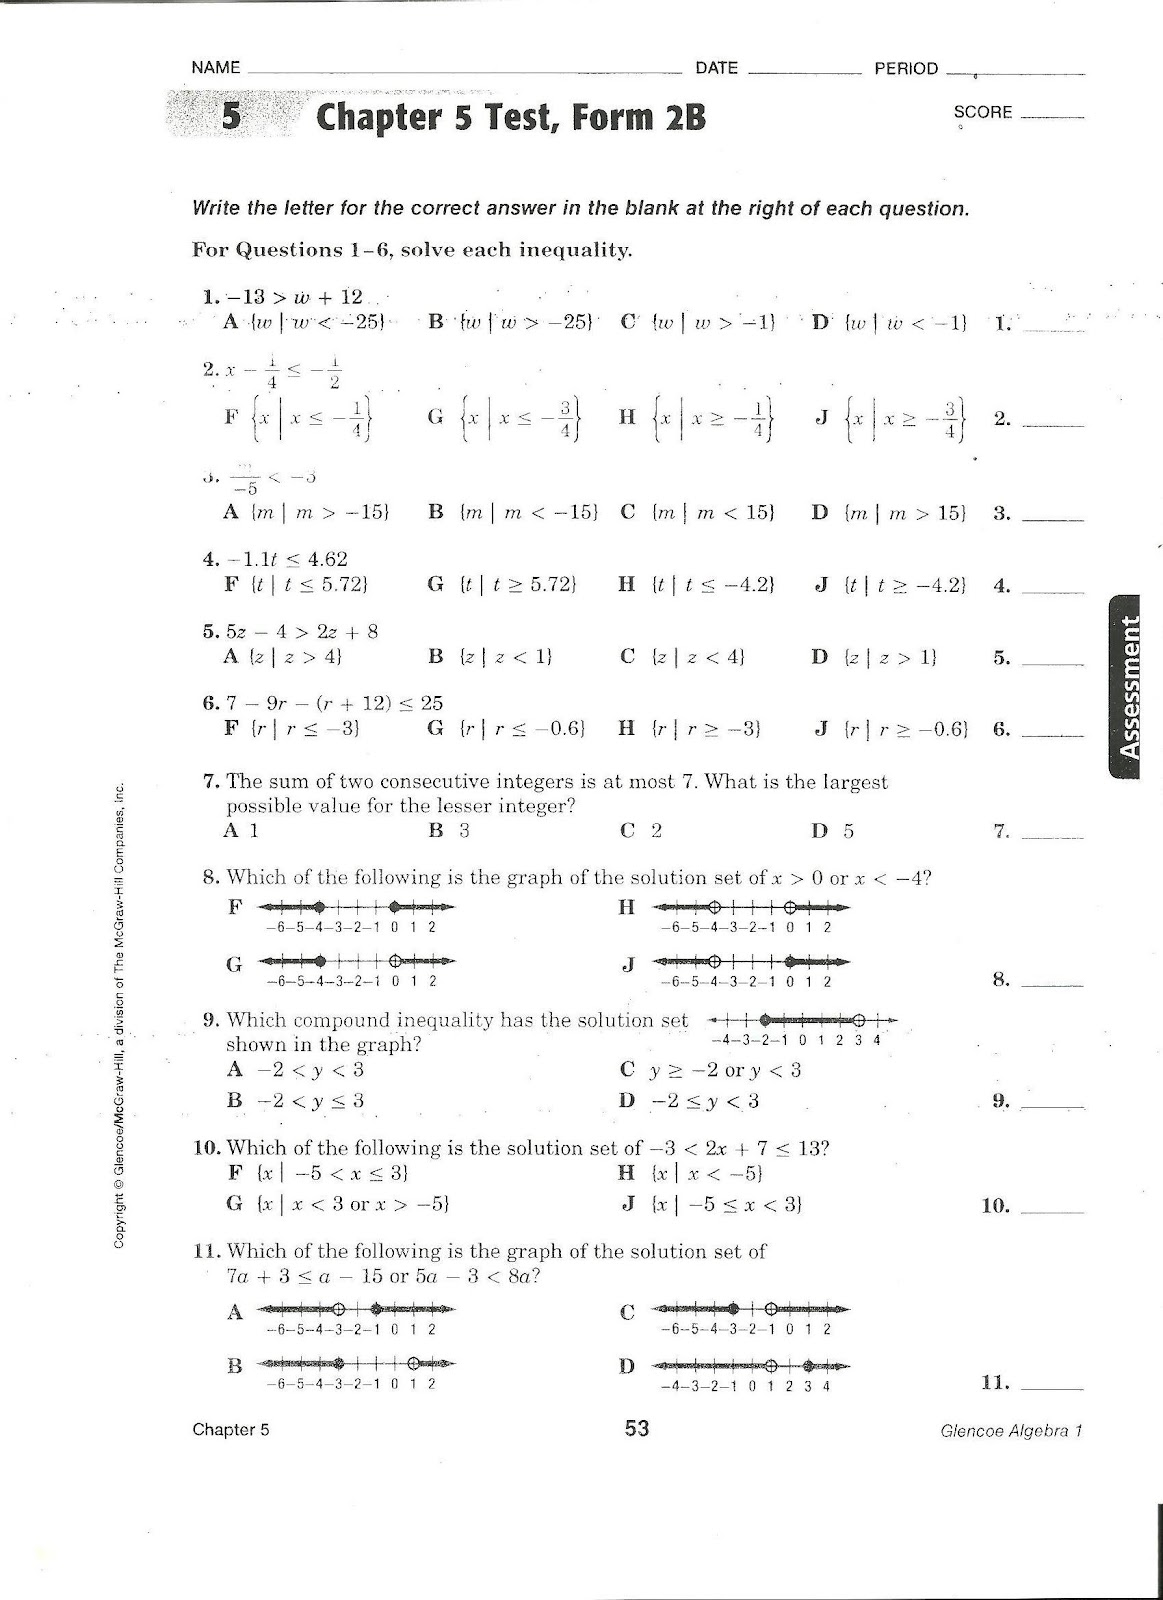 worksheet Algebra 2 Worksheet Answers printables holt mcdougal algebra 2 worksheet answers gozoneguide 1 abitlikethis of maths board